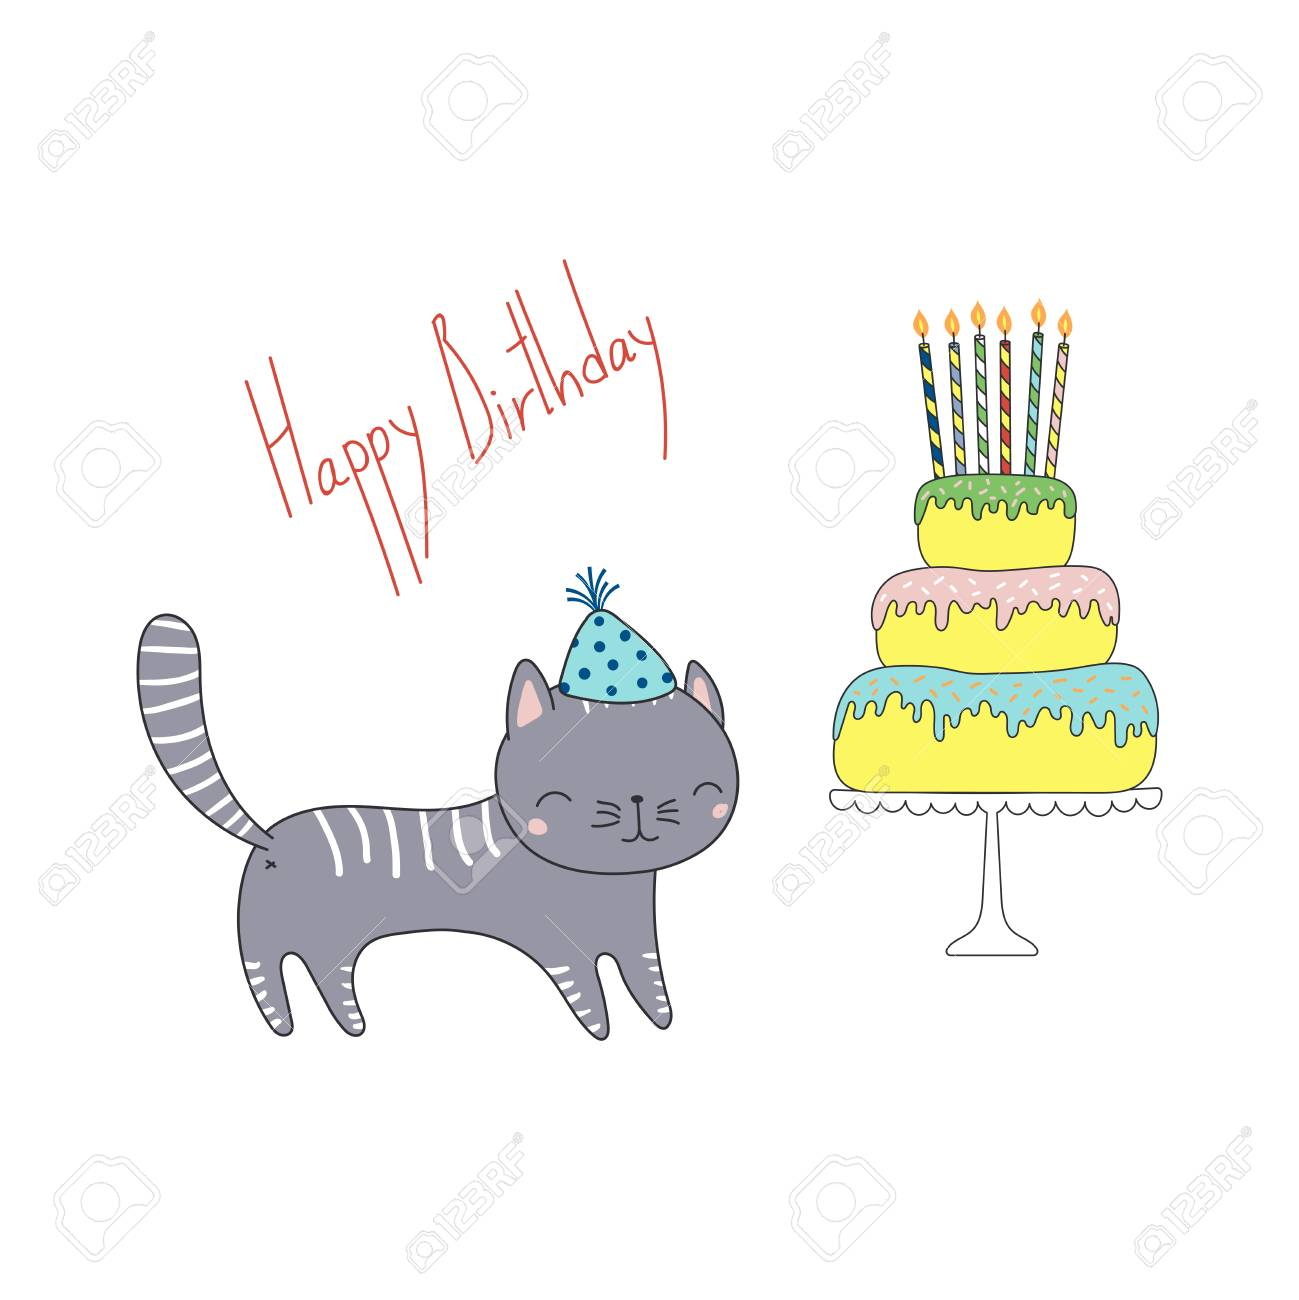 Hand Drawn Happy Birthday Greeting Card With Cute Funny Cartoon Cat In A Party Hat Cake On Stand Text Isolated Objects White Background